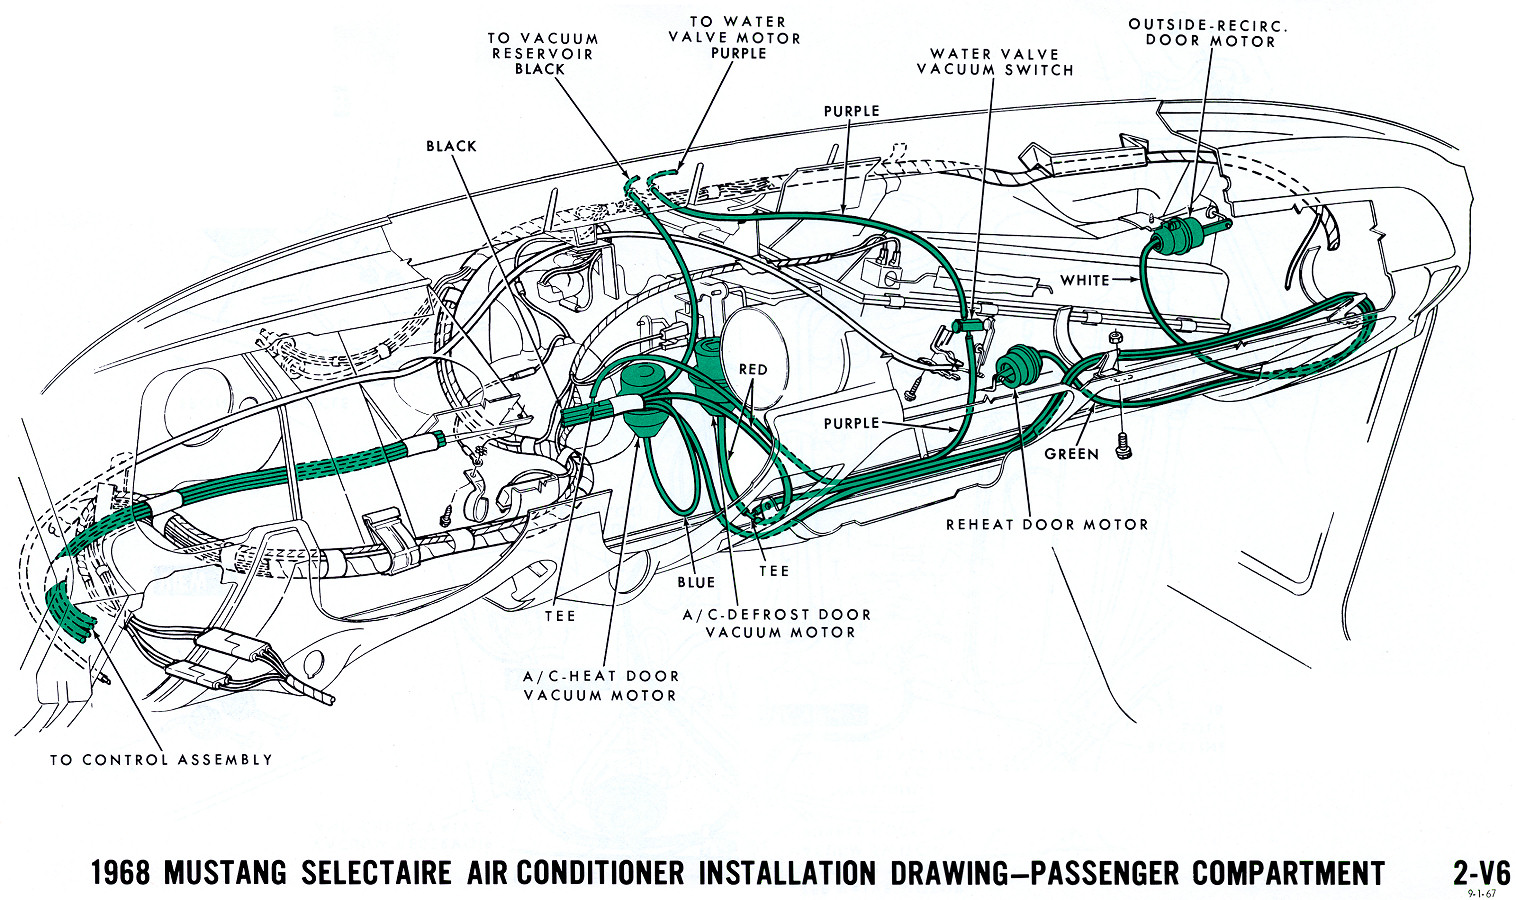 1968 Mustang Wiring Diagrams And Vacuum Schematics Average Joe Camaro Stearing Column Diagram Air Conditioning Interior